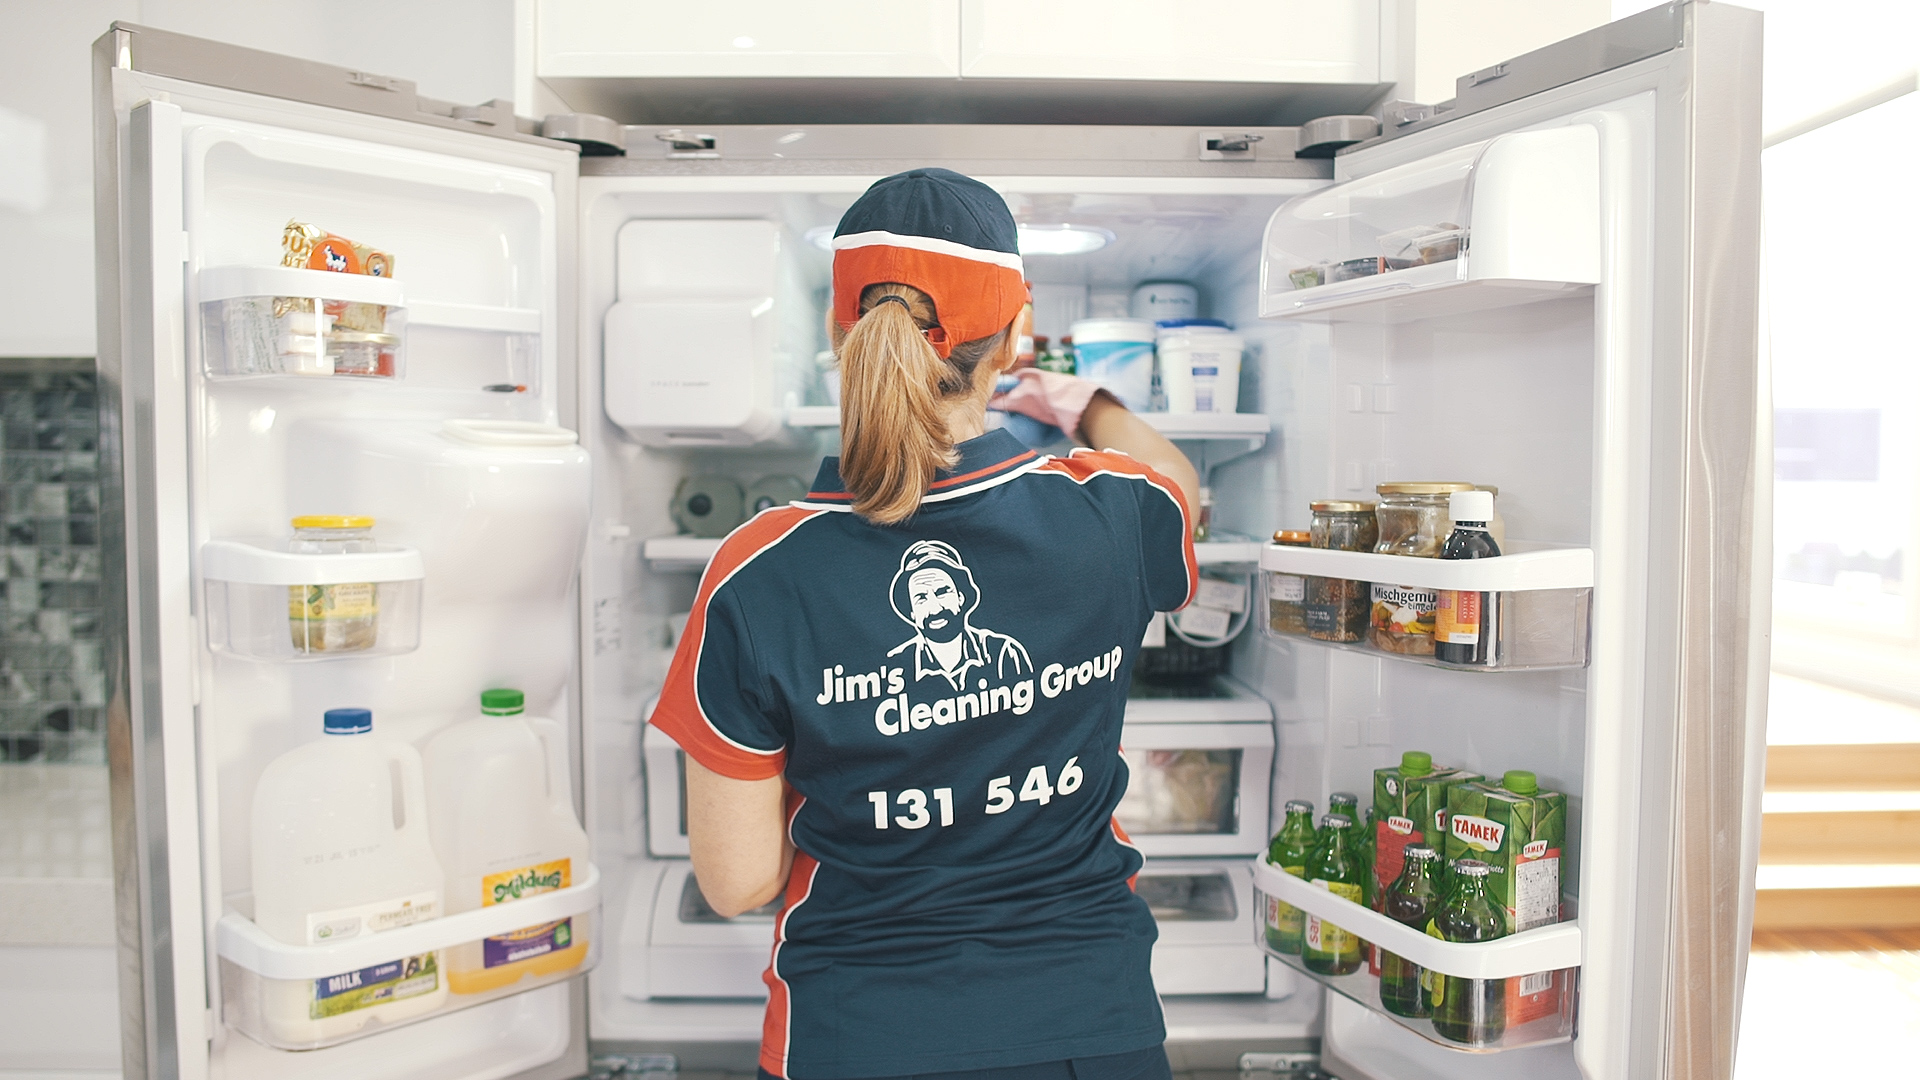 Jim's Cleaning Ormond - Chadstone, VIC 3148 - (01) 3154 1546 | ShowMeLocal.com